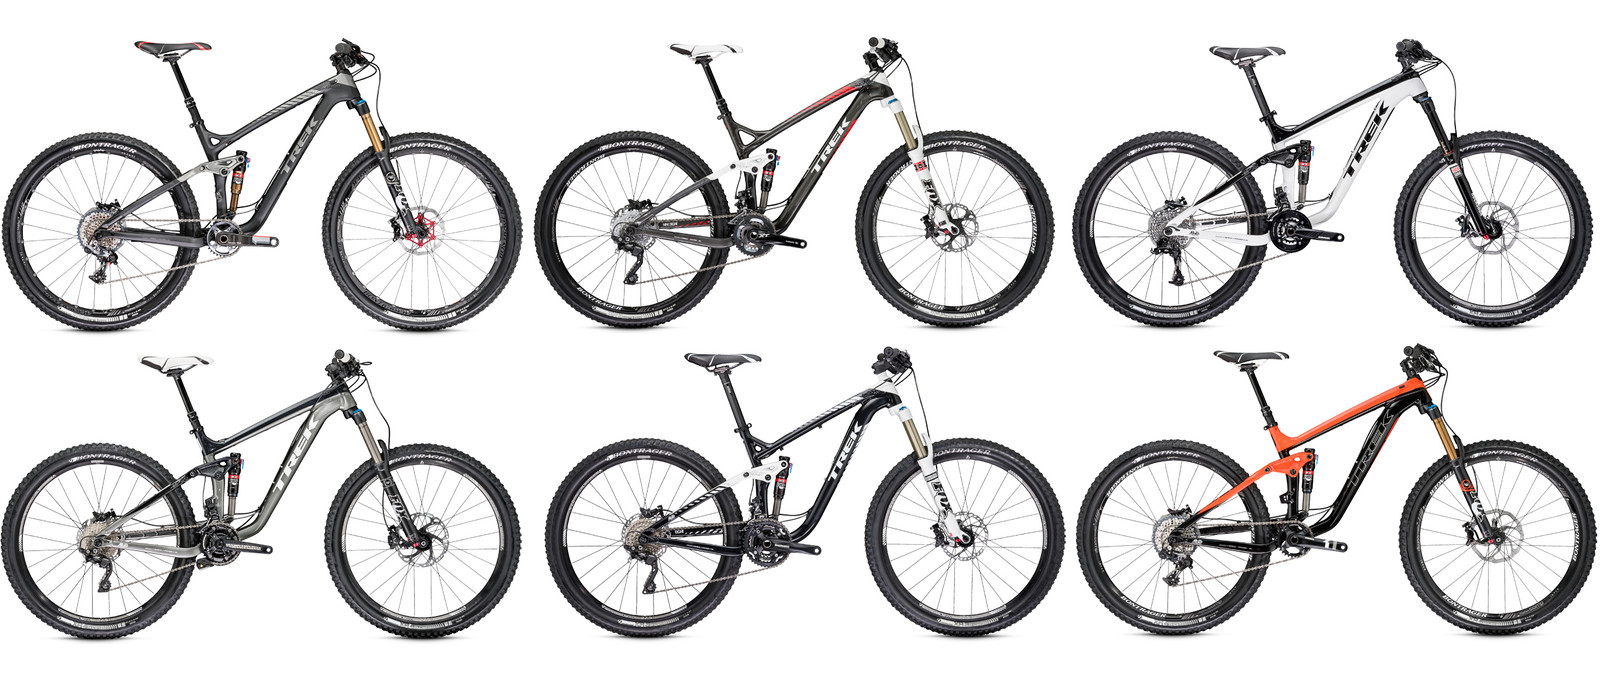 Trek Unveils 2014 27.5 / 650b Slash and Remedy Lineup - 2014 650b Trek Slash and Remedy - Mountain Biking Pictures - Vital MTB